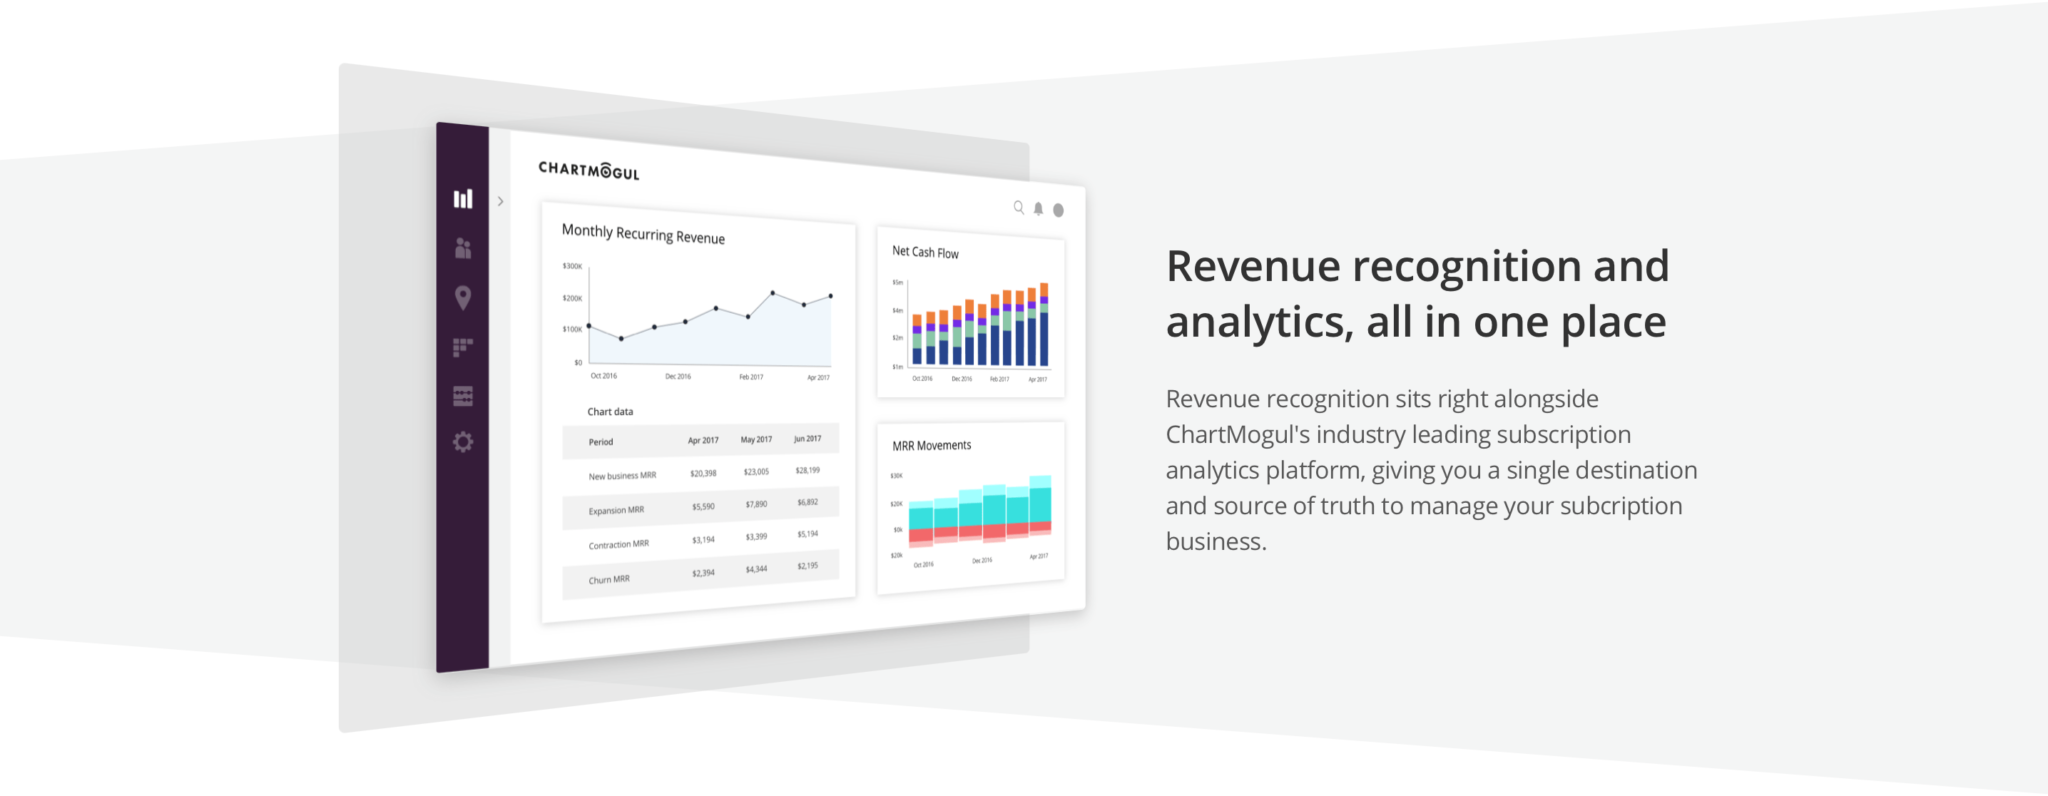 article analysis for revenue recognition timing and Event based - the system automates timing of revenue for immediate recognition or future recognition based on shipments and the revenue recognition module takes into consideration all the deliveries, contingency events, carve-outs and carve-ins to calculate the amount and timing of.